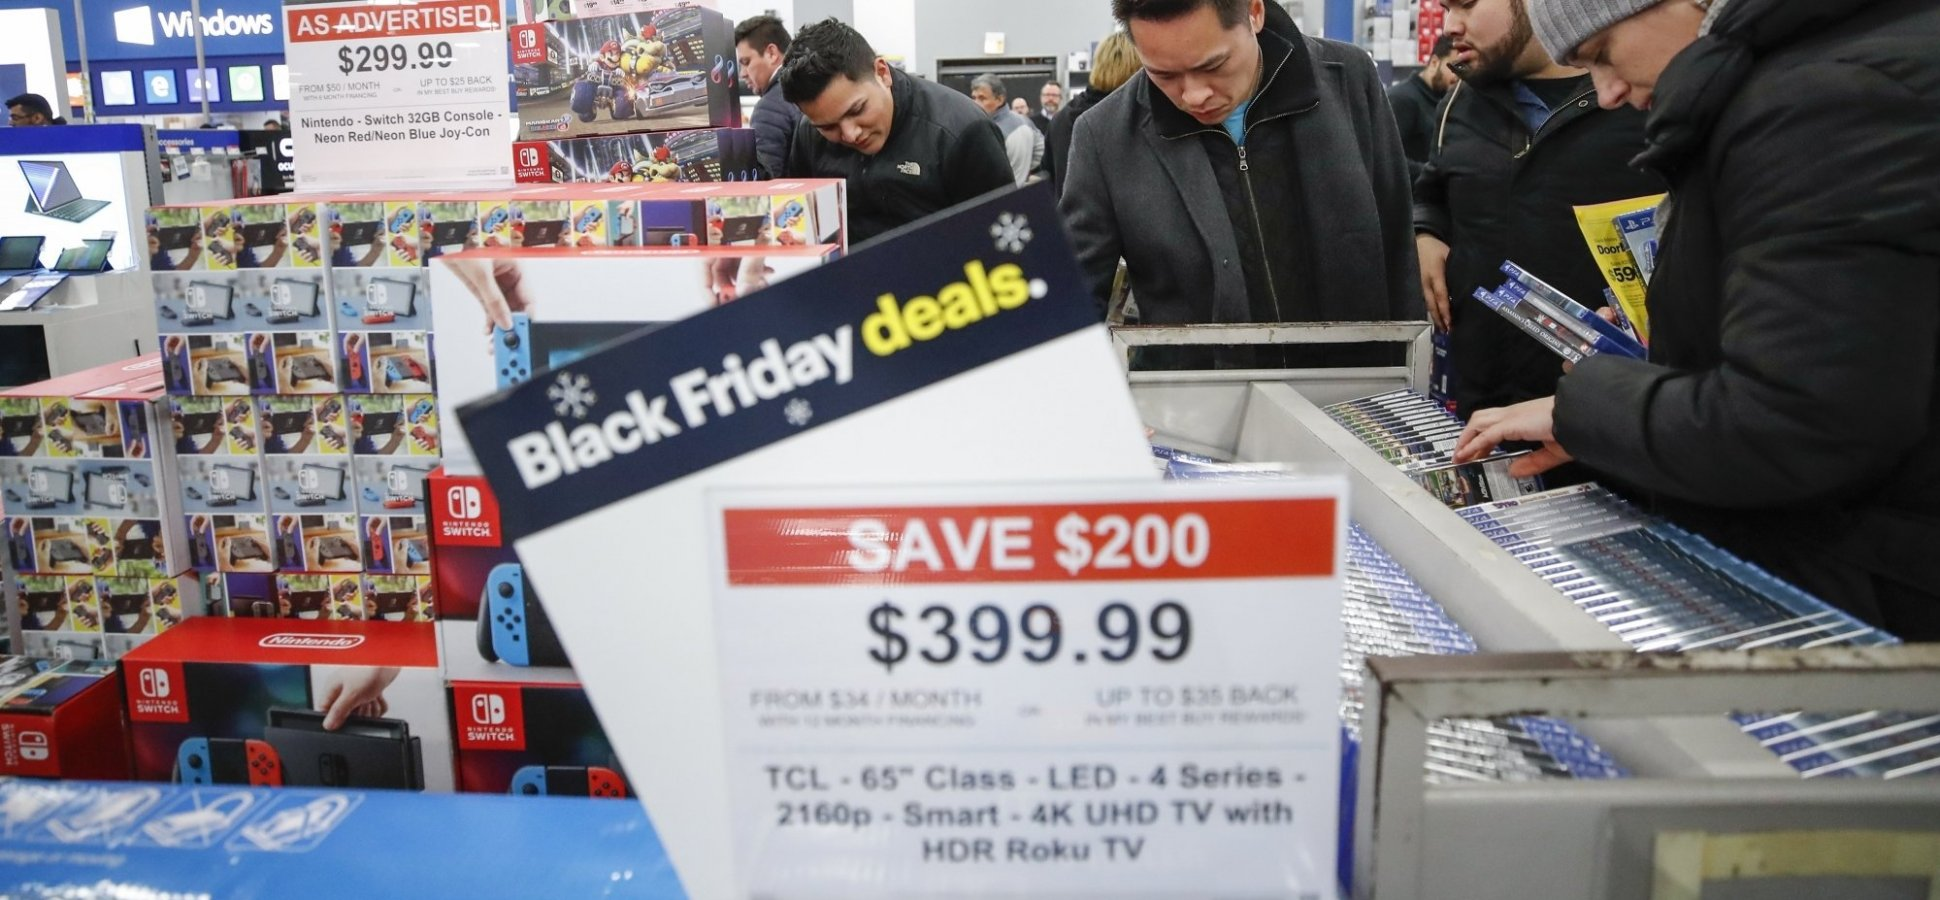 Here Are the Best Black Friday Gadget Deals From Amazon, Target, and Best Buy